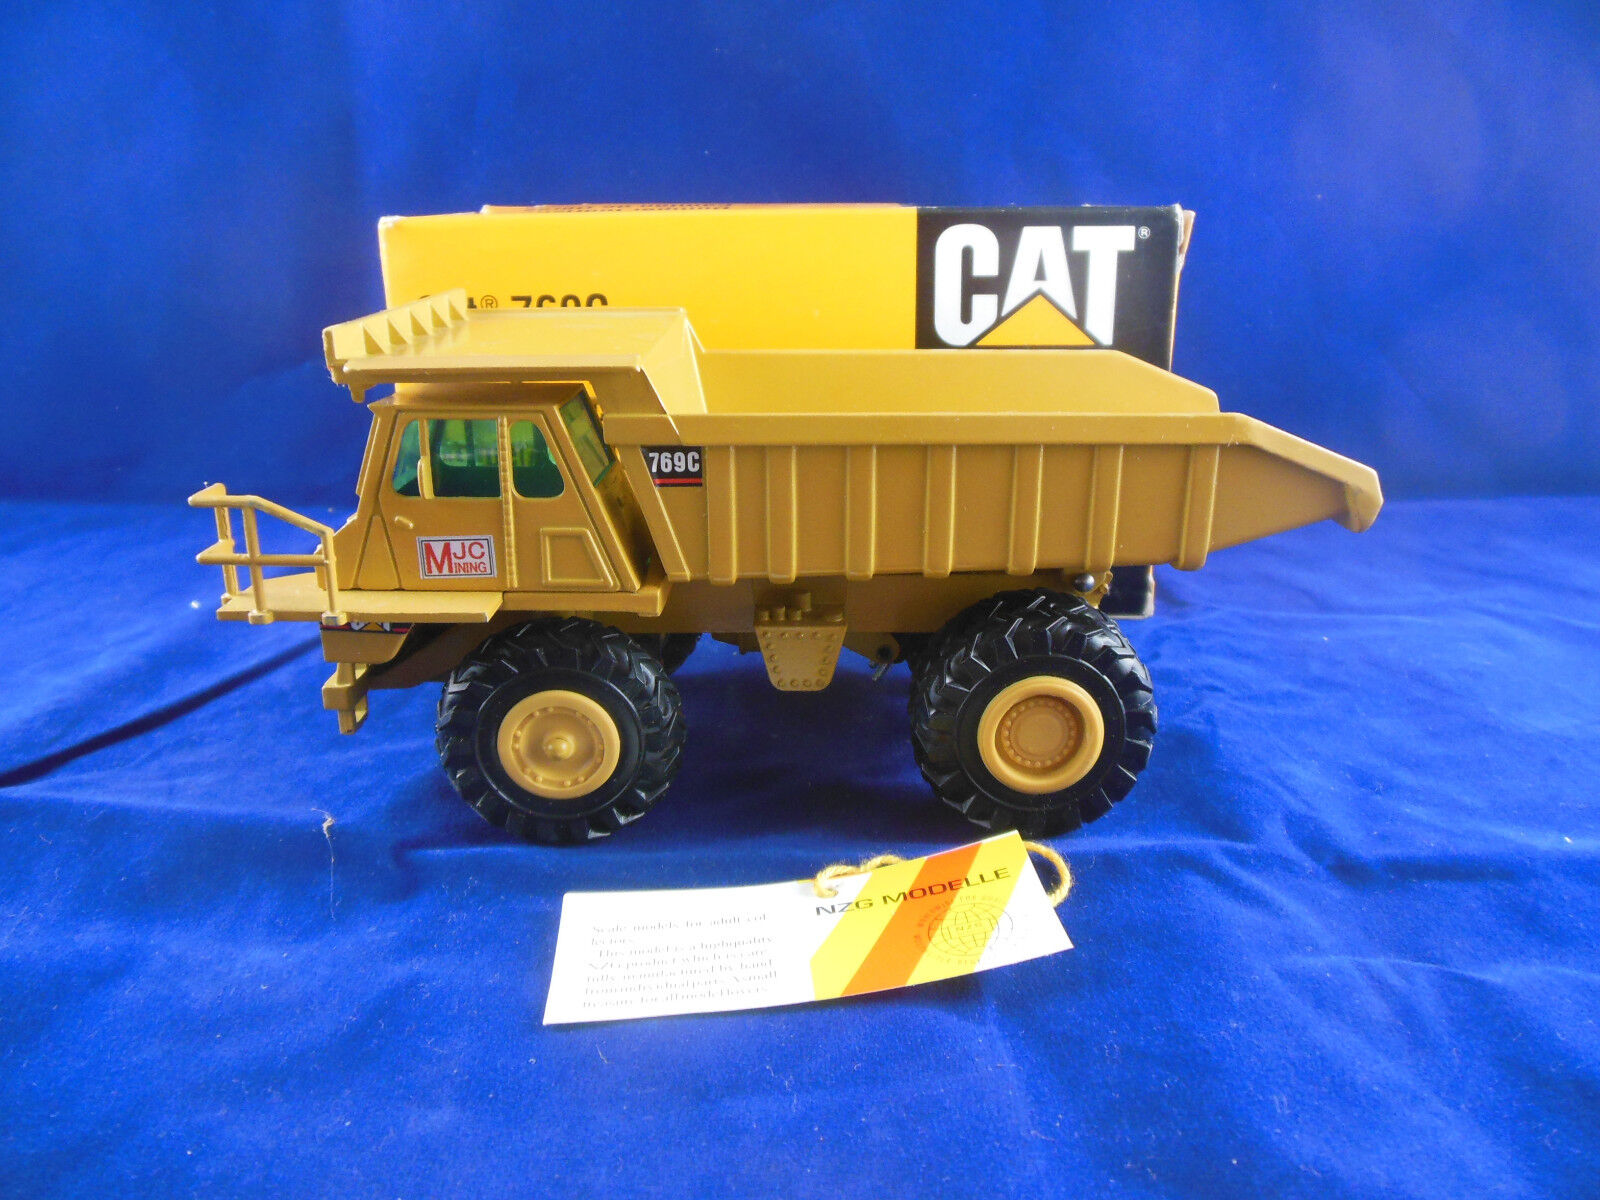 NZG Art. 222 Caterpillar Cat 769 C hors-route camion échelle 1 50 Made in Germany